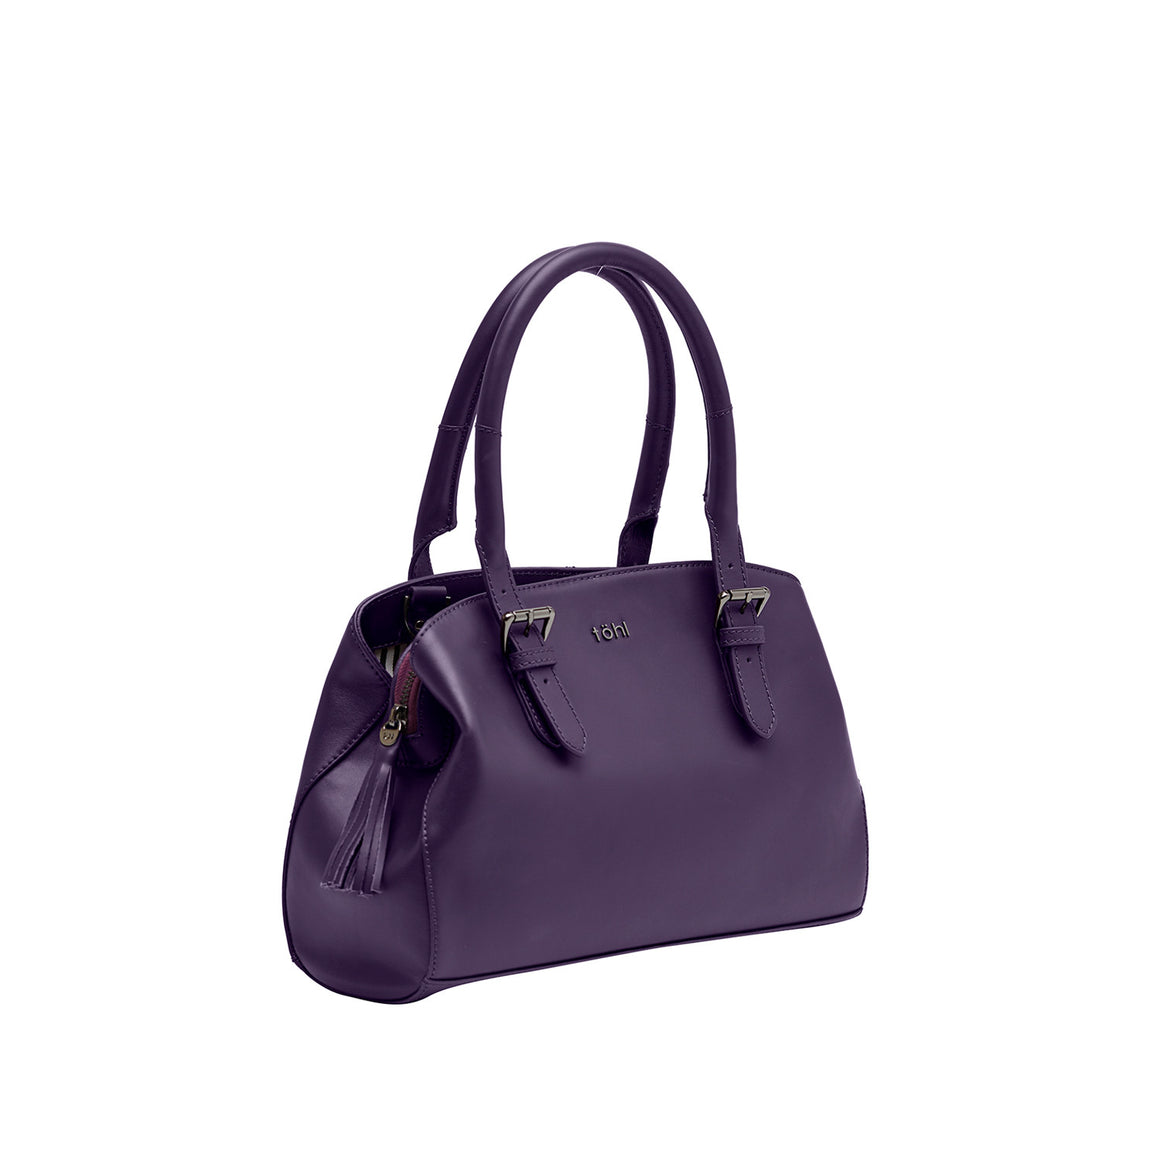 HH 0010 - TOHL ALVA WOMEN'S DAY BAG - AUBERGINE